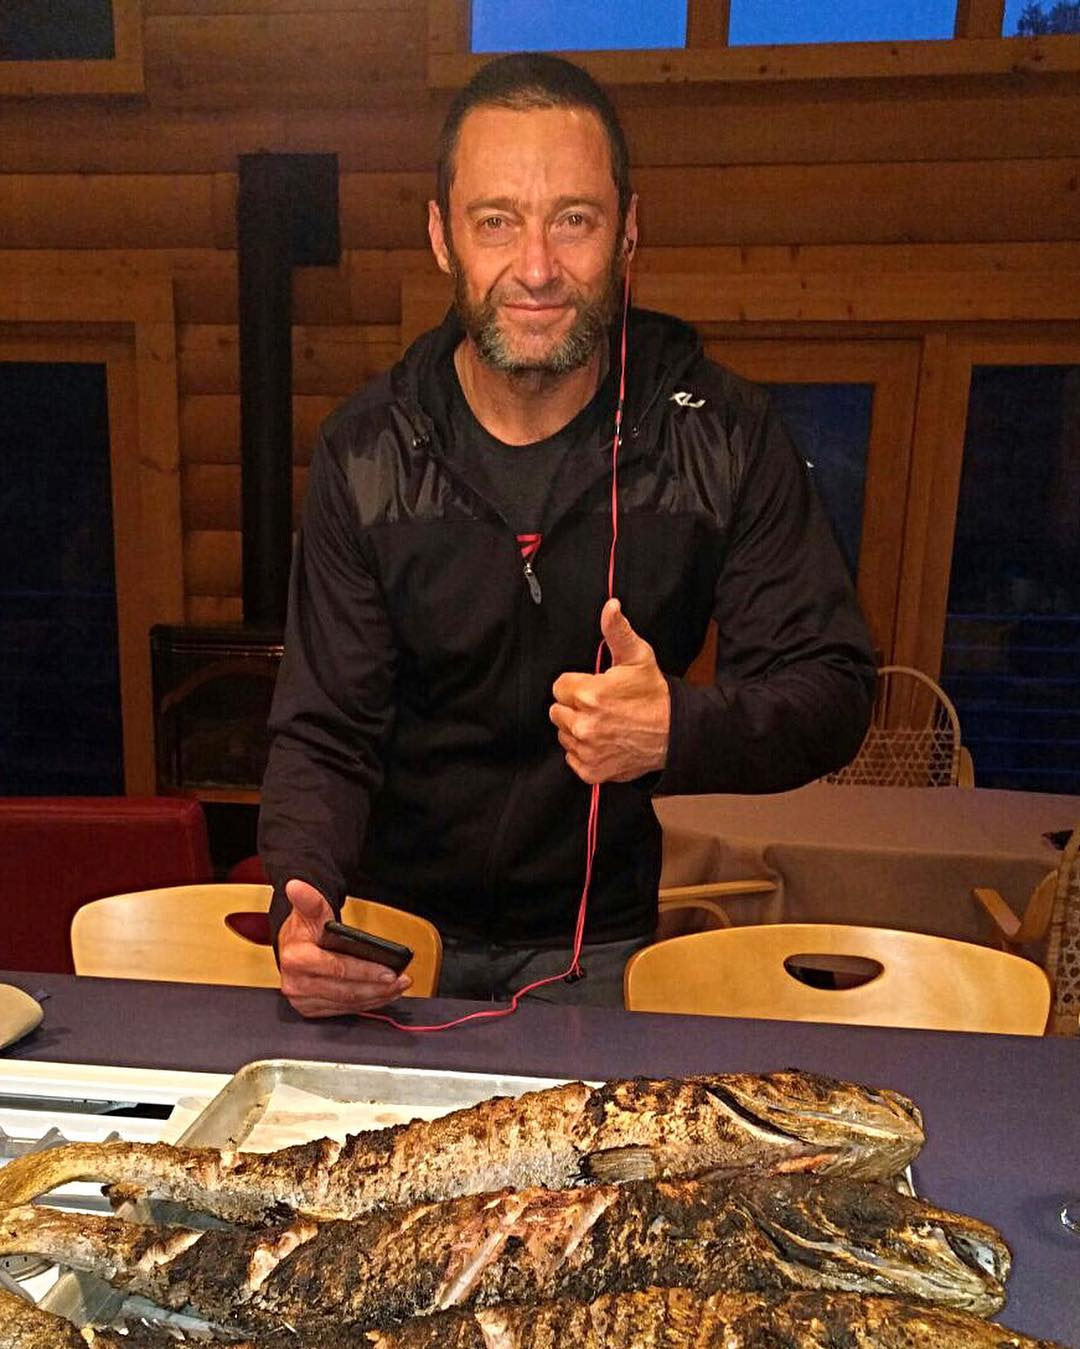 Hugh Jackman Old Man Instagram Post